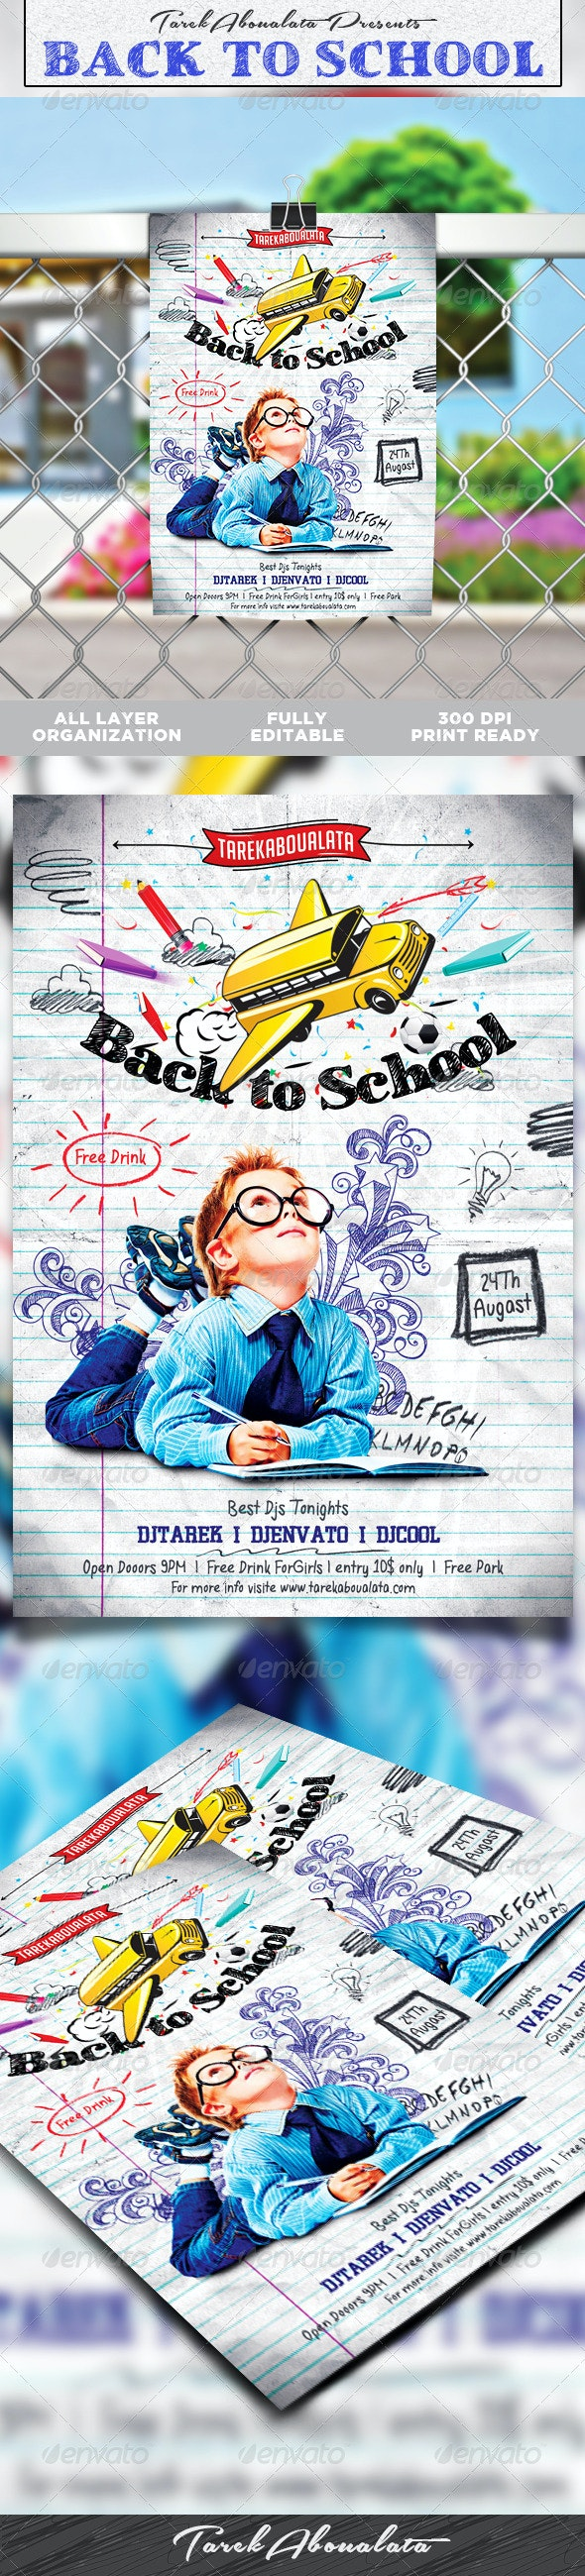 Back to School Flyer Template v.2 - Clubs & Parties Events